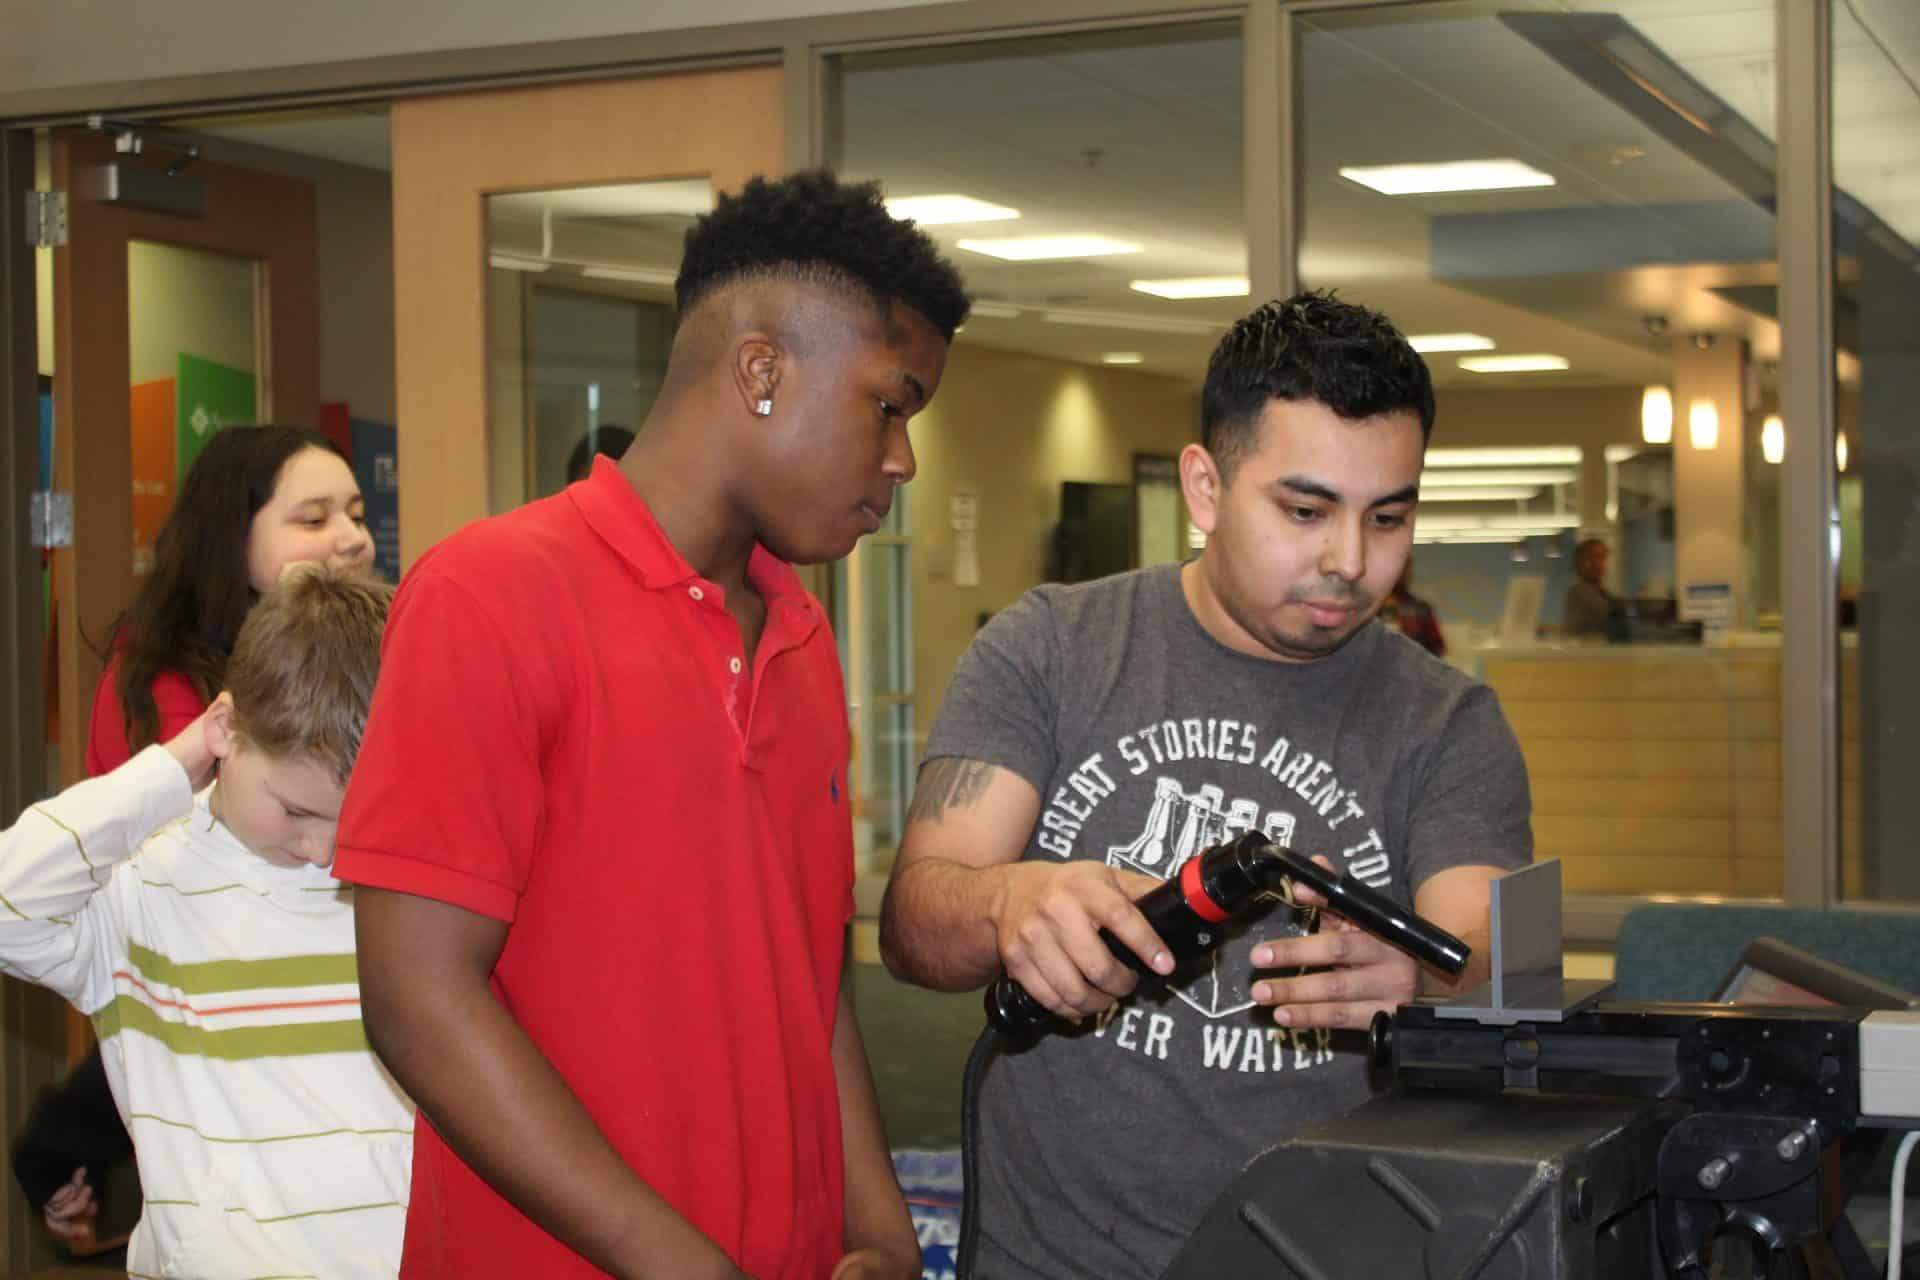 virtual welder at Boys and Girls Club